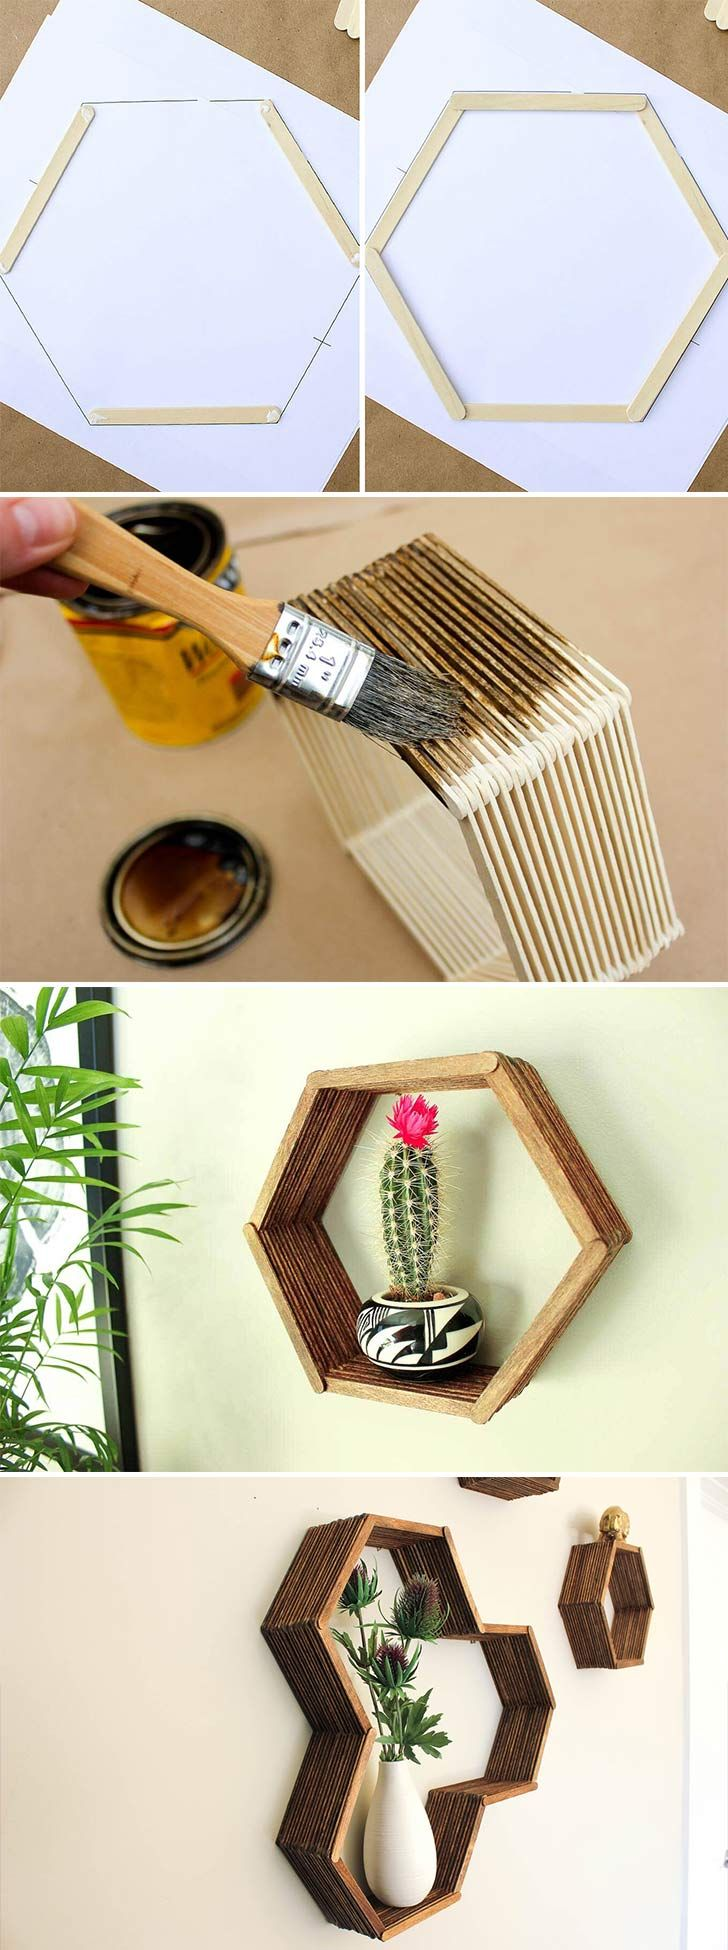 40 amazing diy home decor ideas that wont look diyed - Home Decor Diy